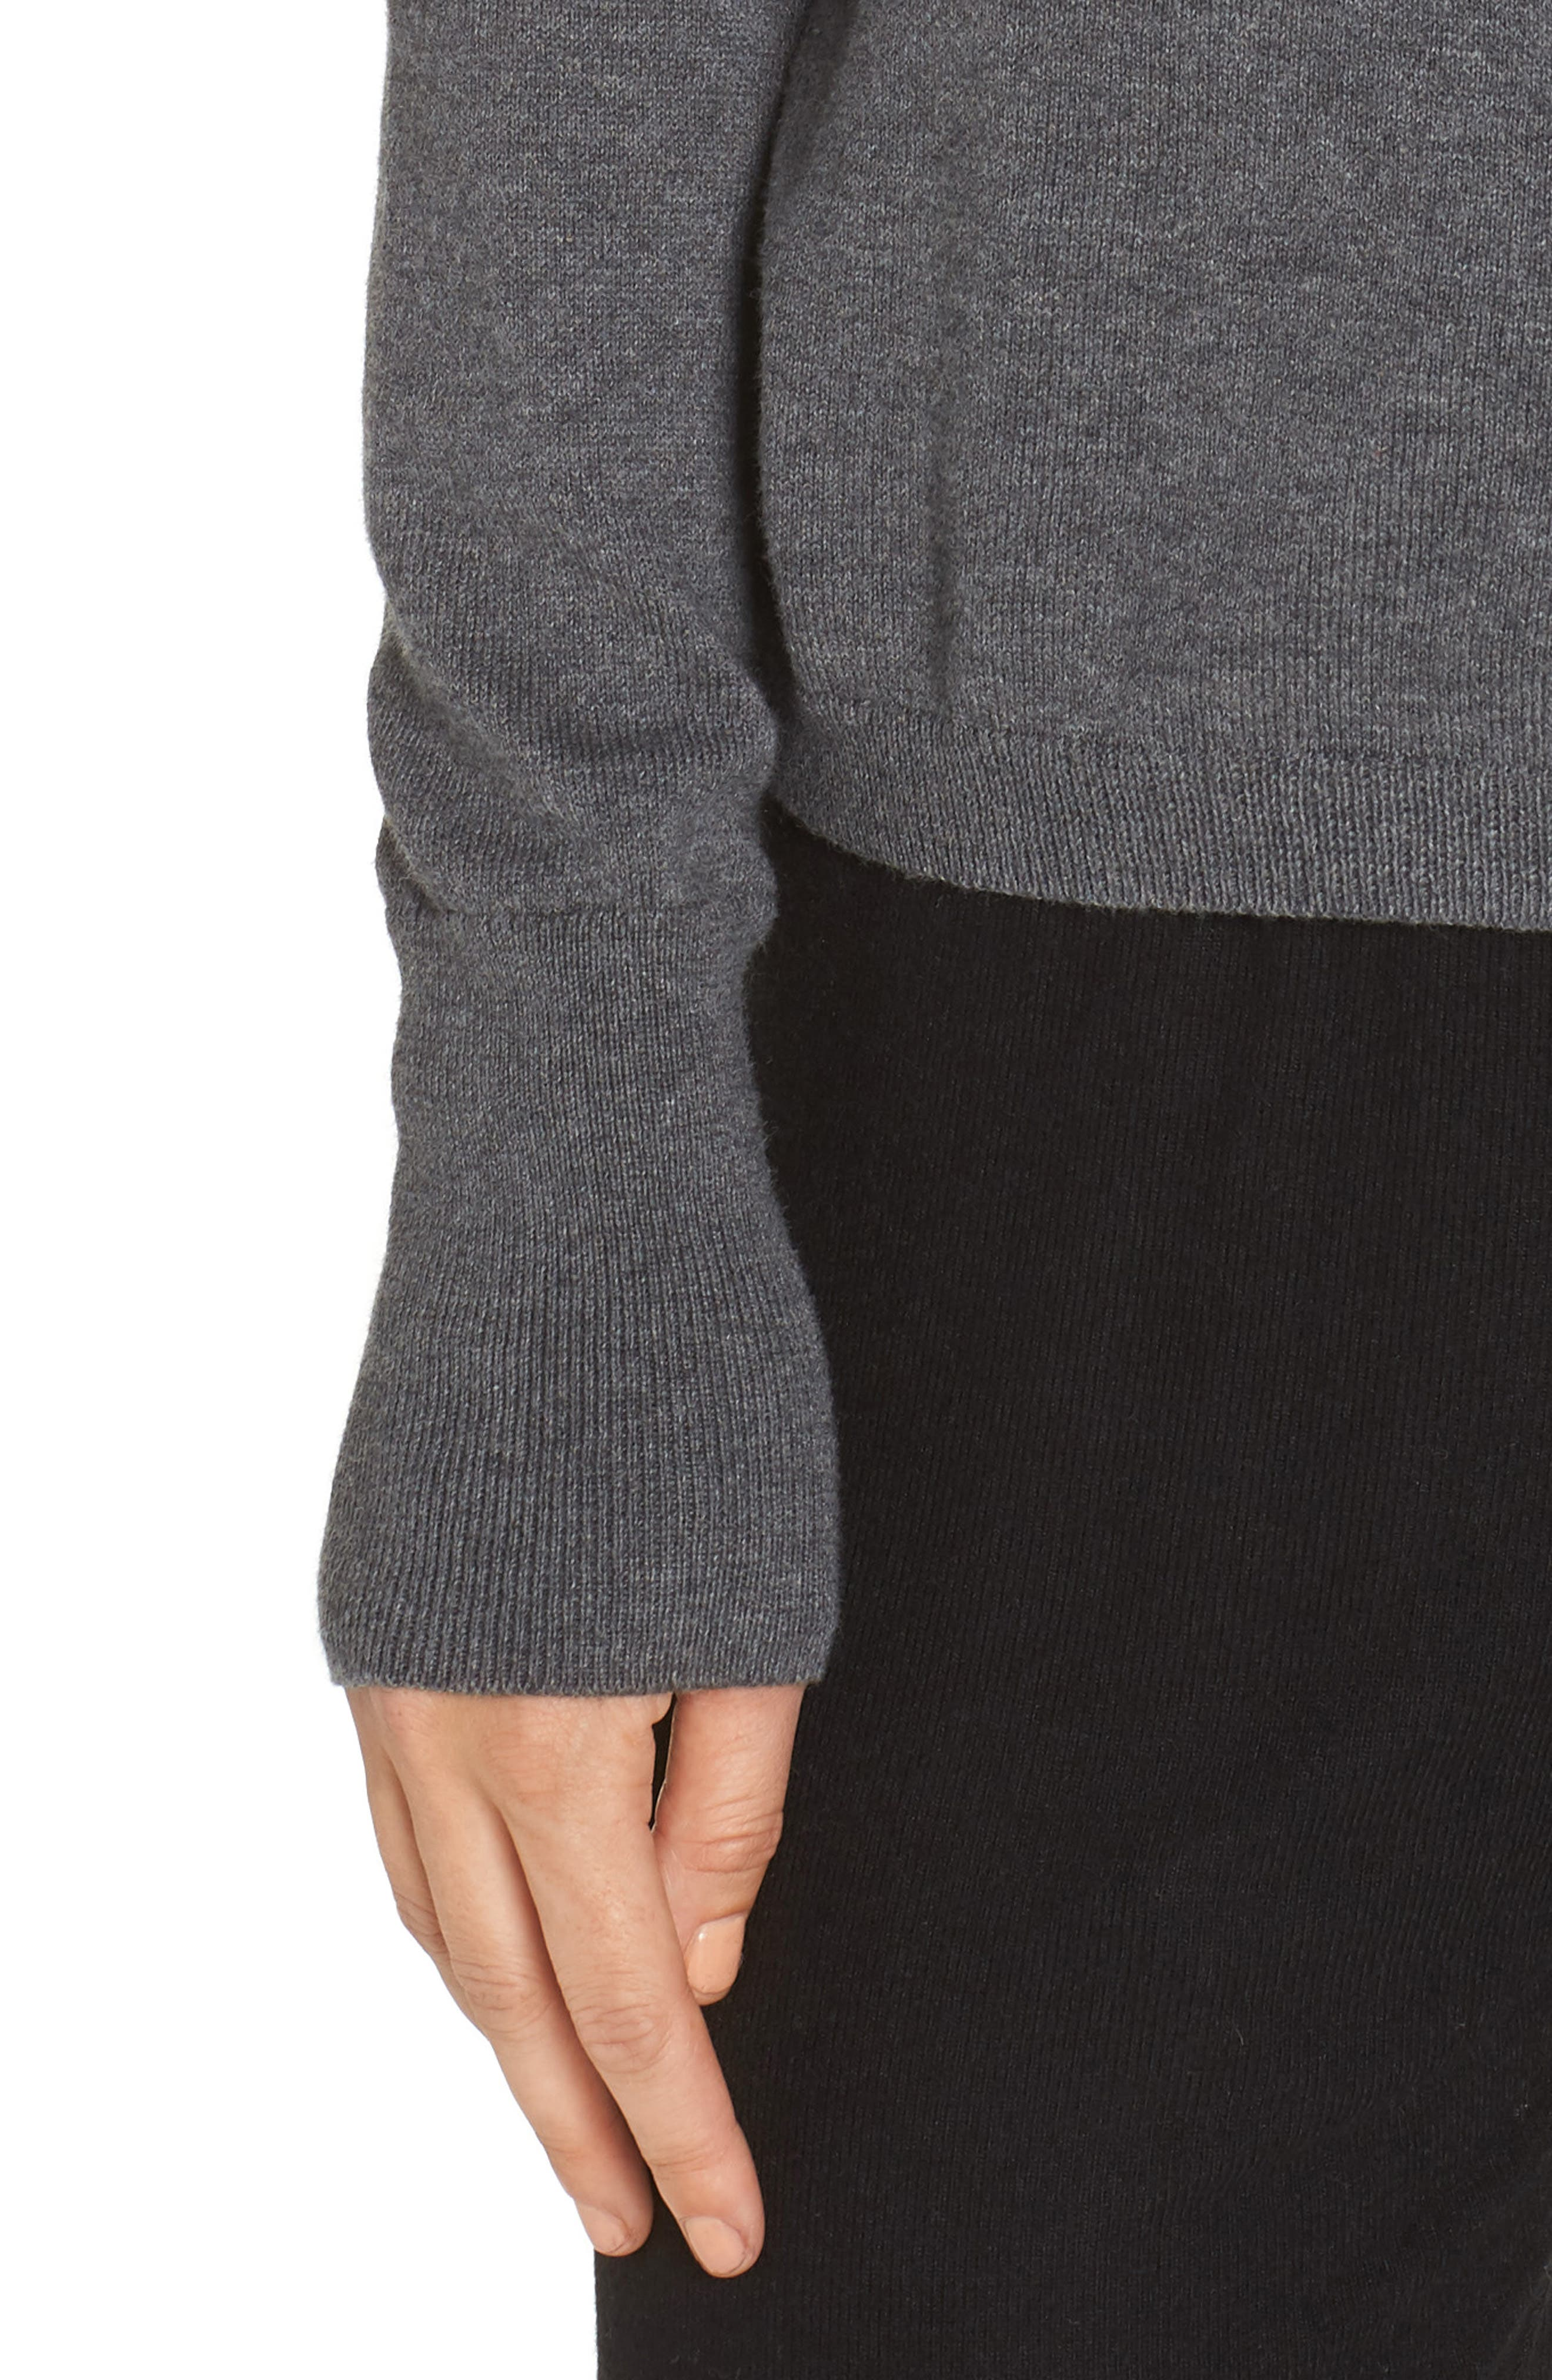 Surplice Front Sweater,                             Alternate thumbnail 4, color,                             DARK STEEL HEATHER